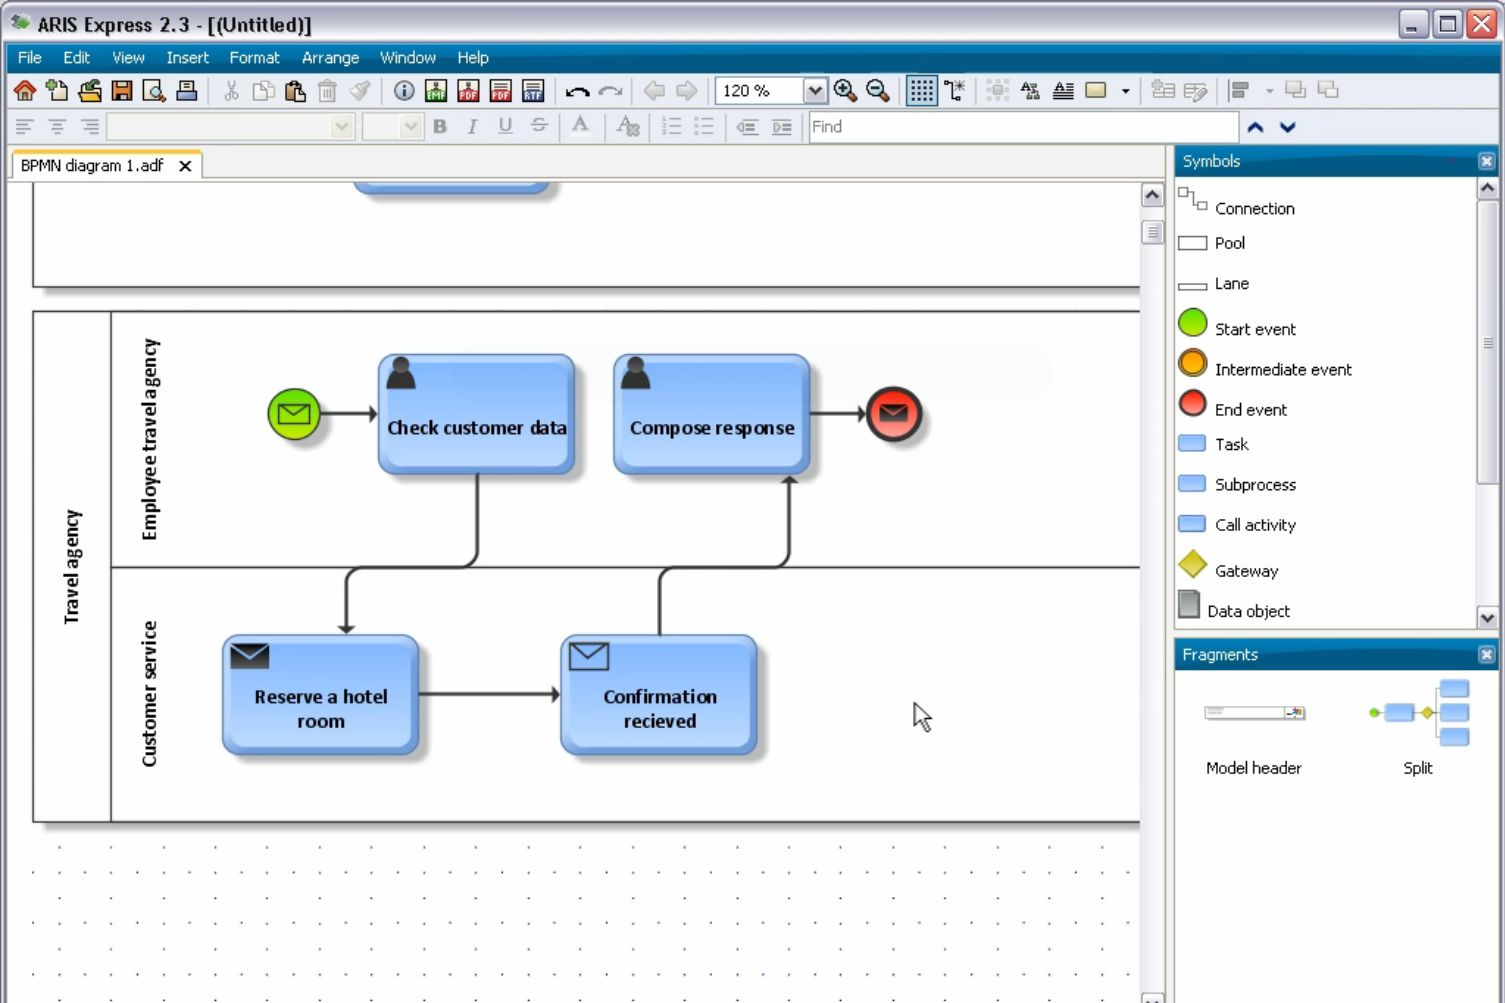 Learn how to model bpmn diagrams in aris express aris bpm community ccuart Gallery